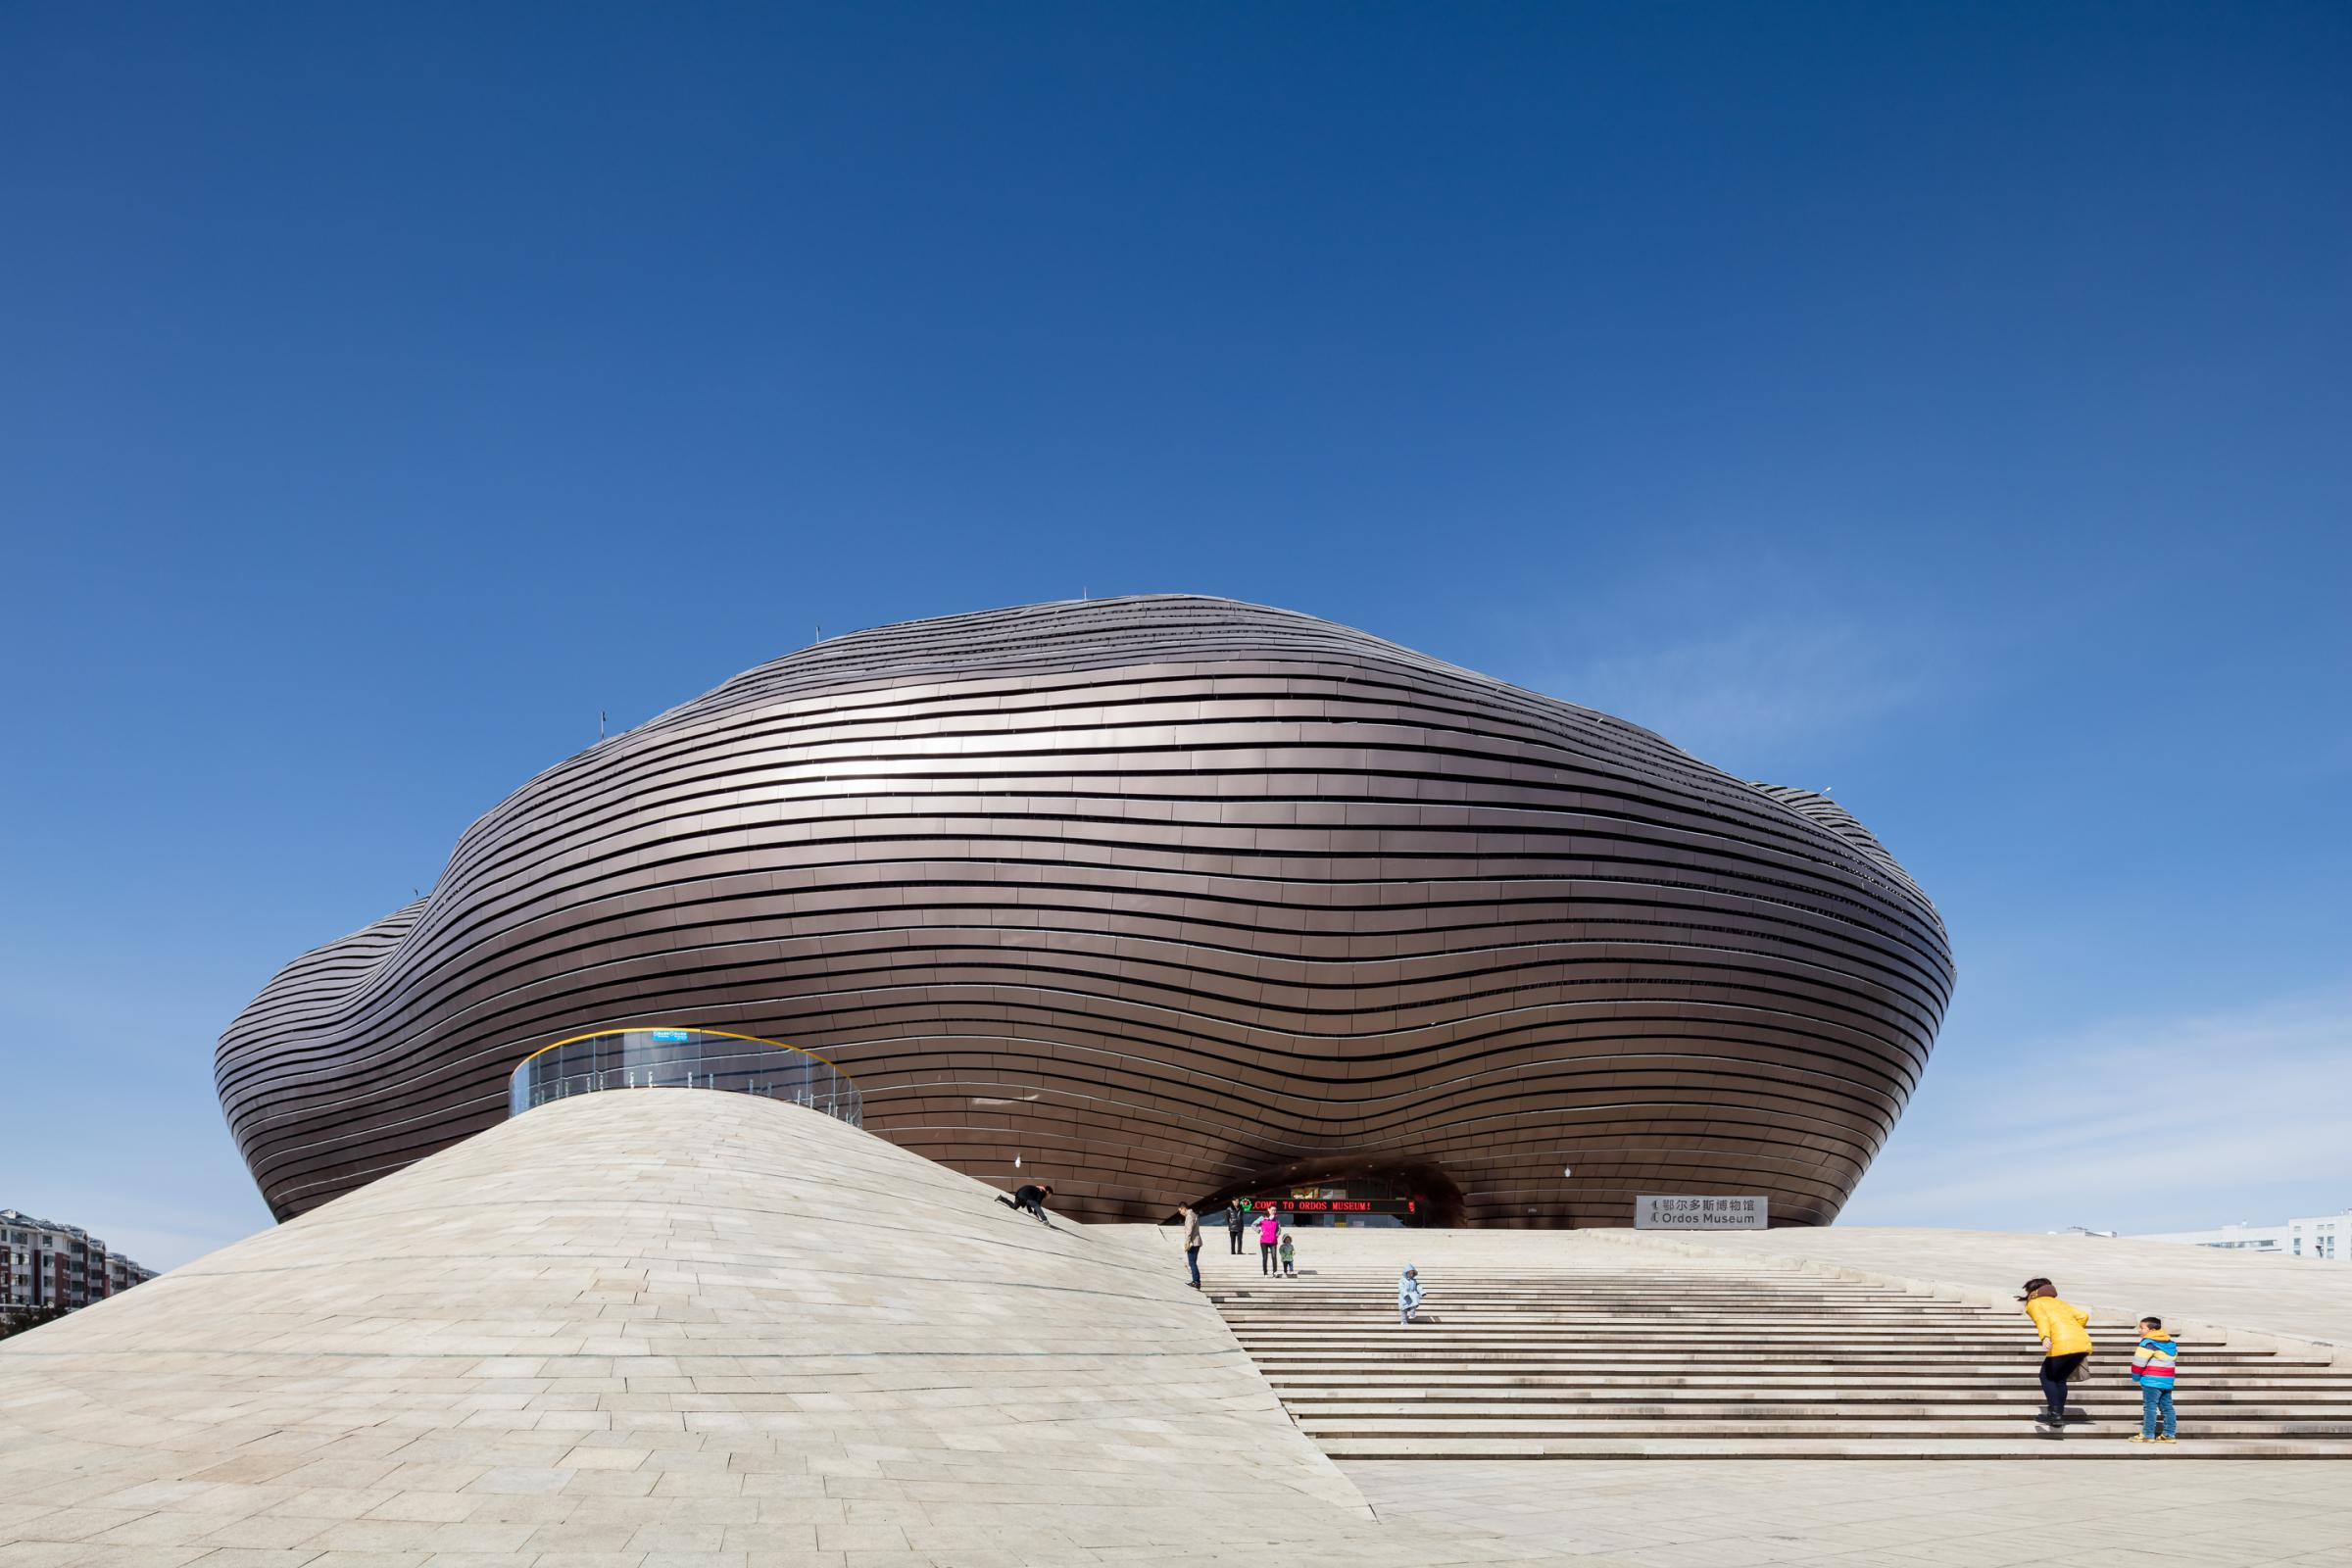 Photograph of Ordos Museum, designed by MAD Architects and located in Ordos, China